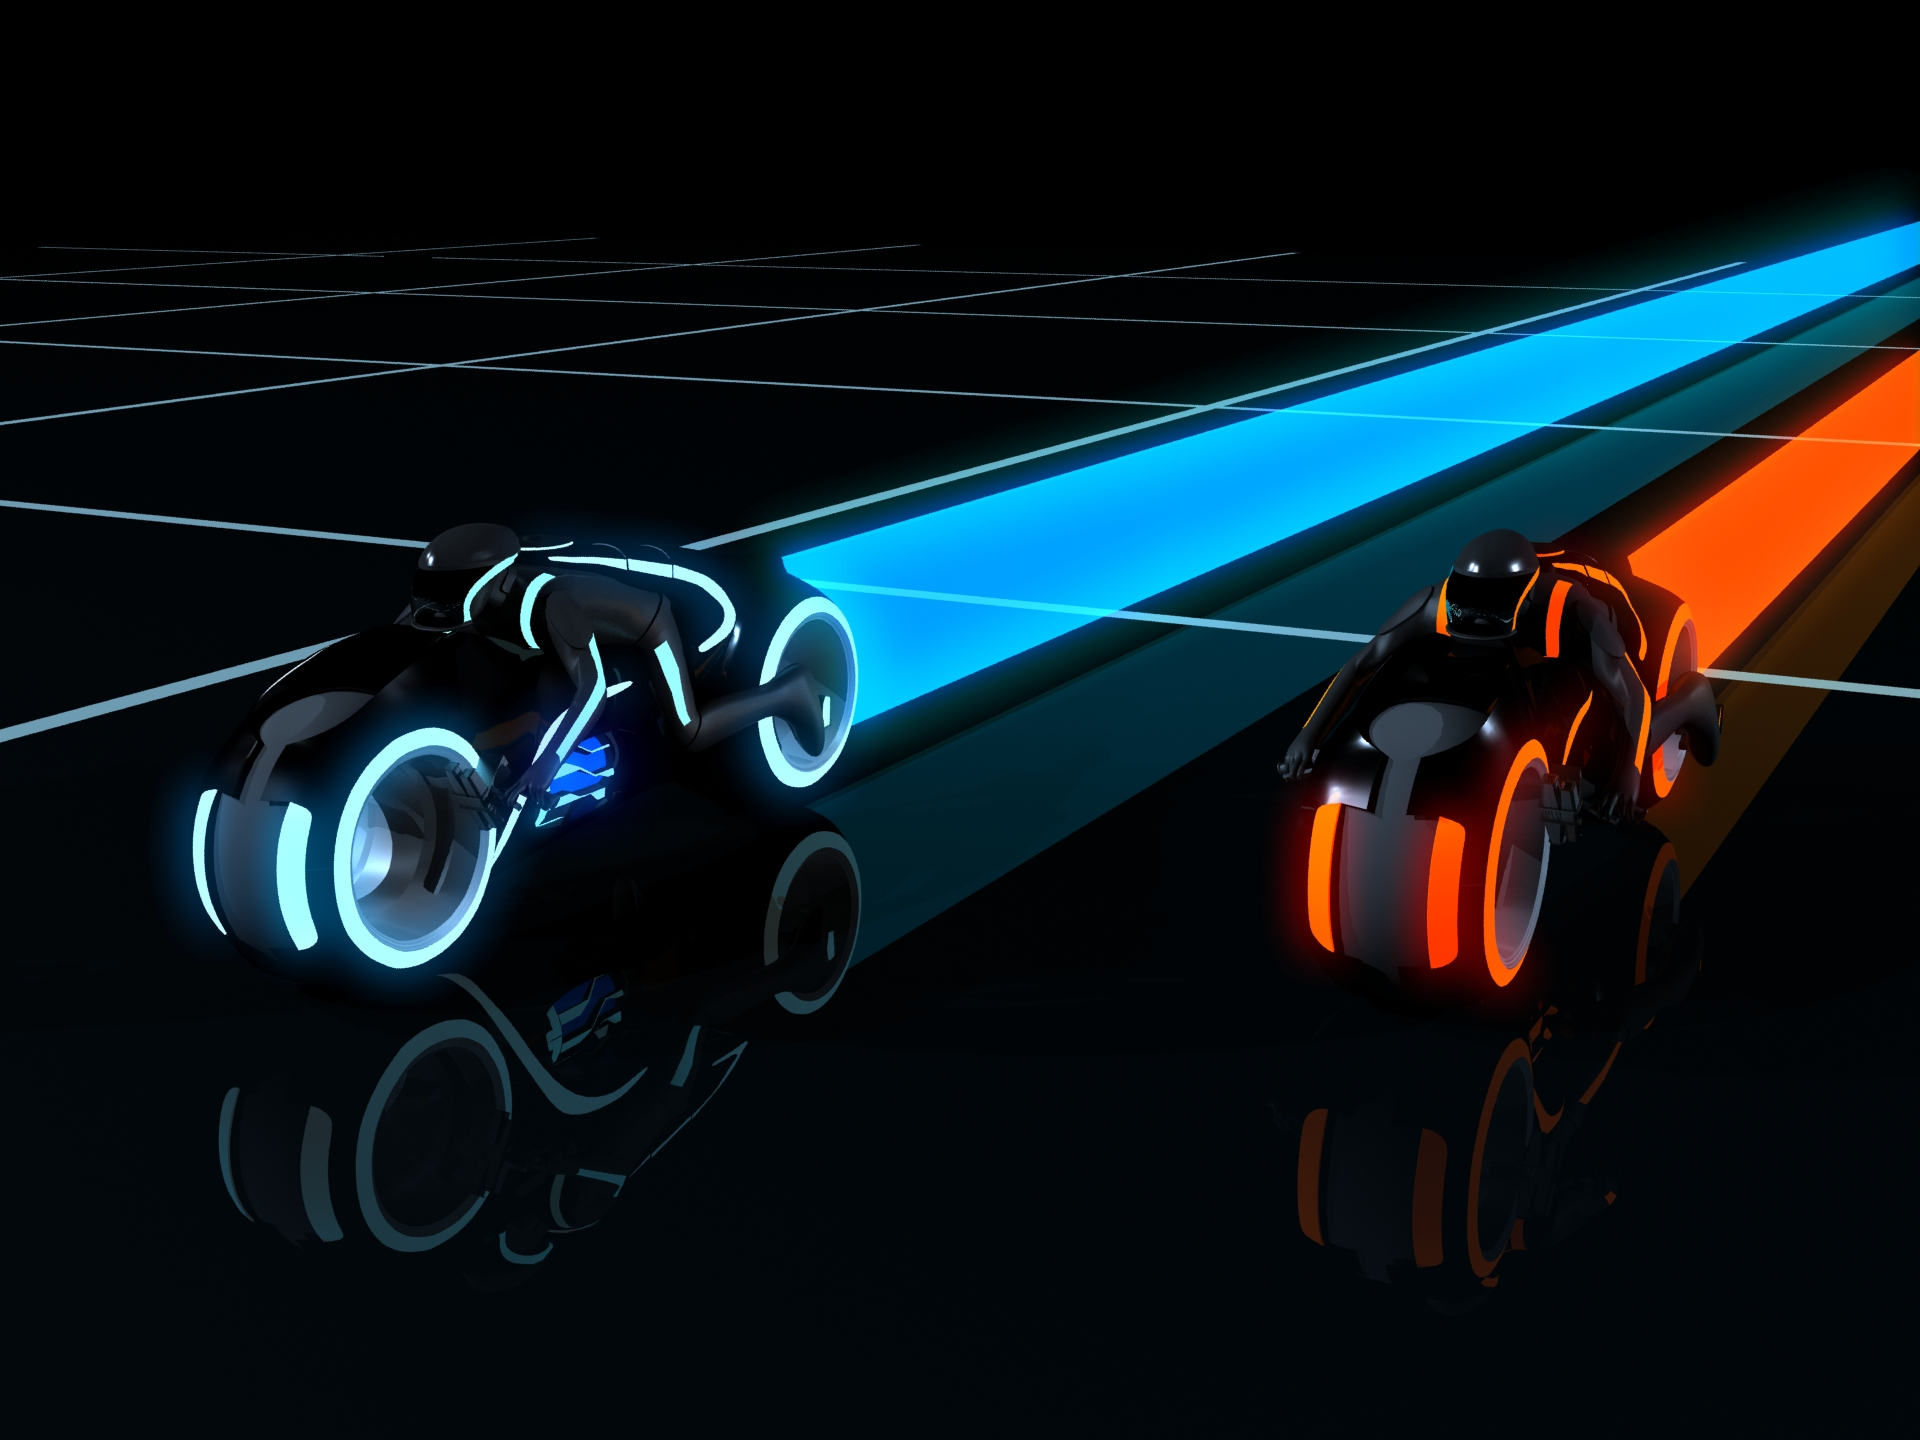 Tron Legacy Light Cycles by PForbes88 on DeviantArt